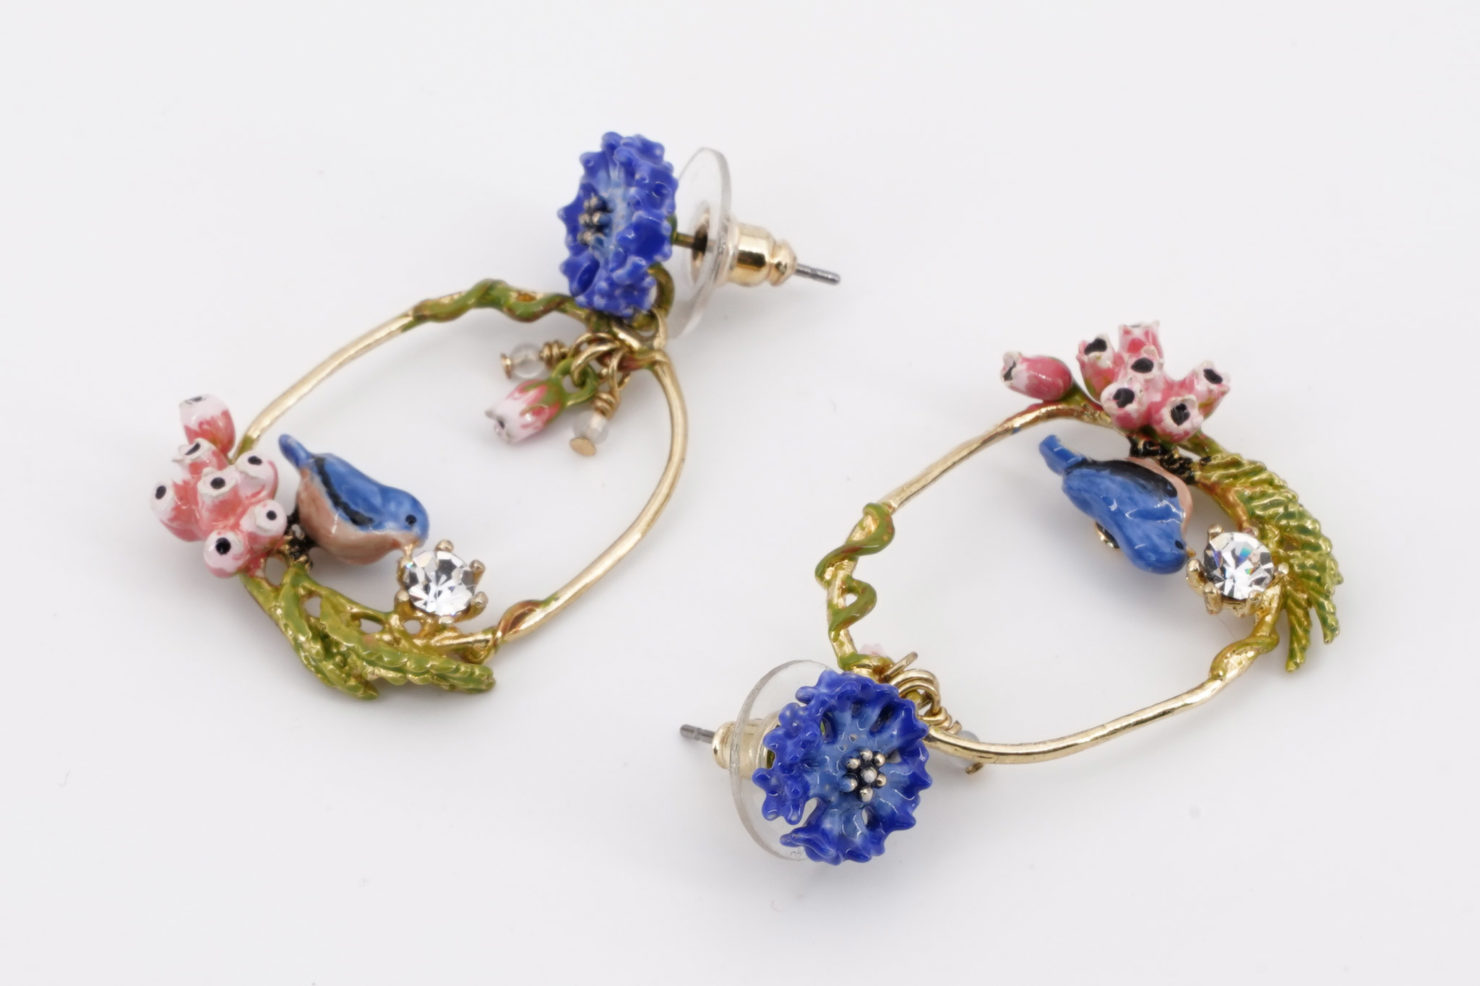 BLUE BIRDS EARRINGS DANS LA CLAIRIERE COLLECTION LES NEREIDES